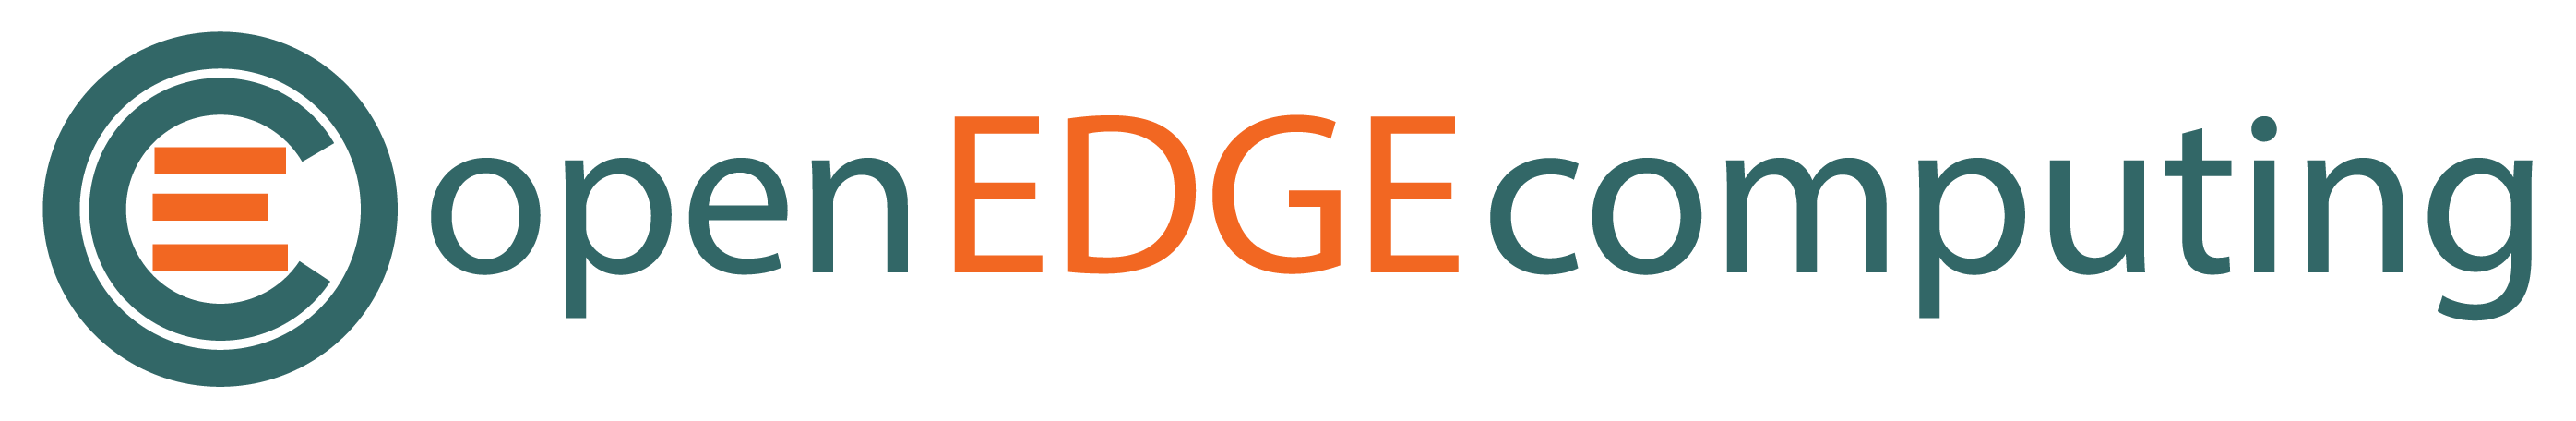 Forum | Open Edge Computing